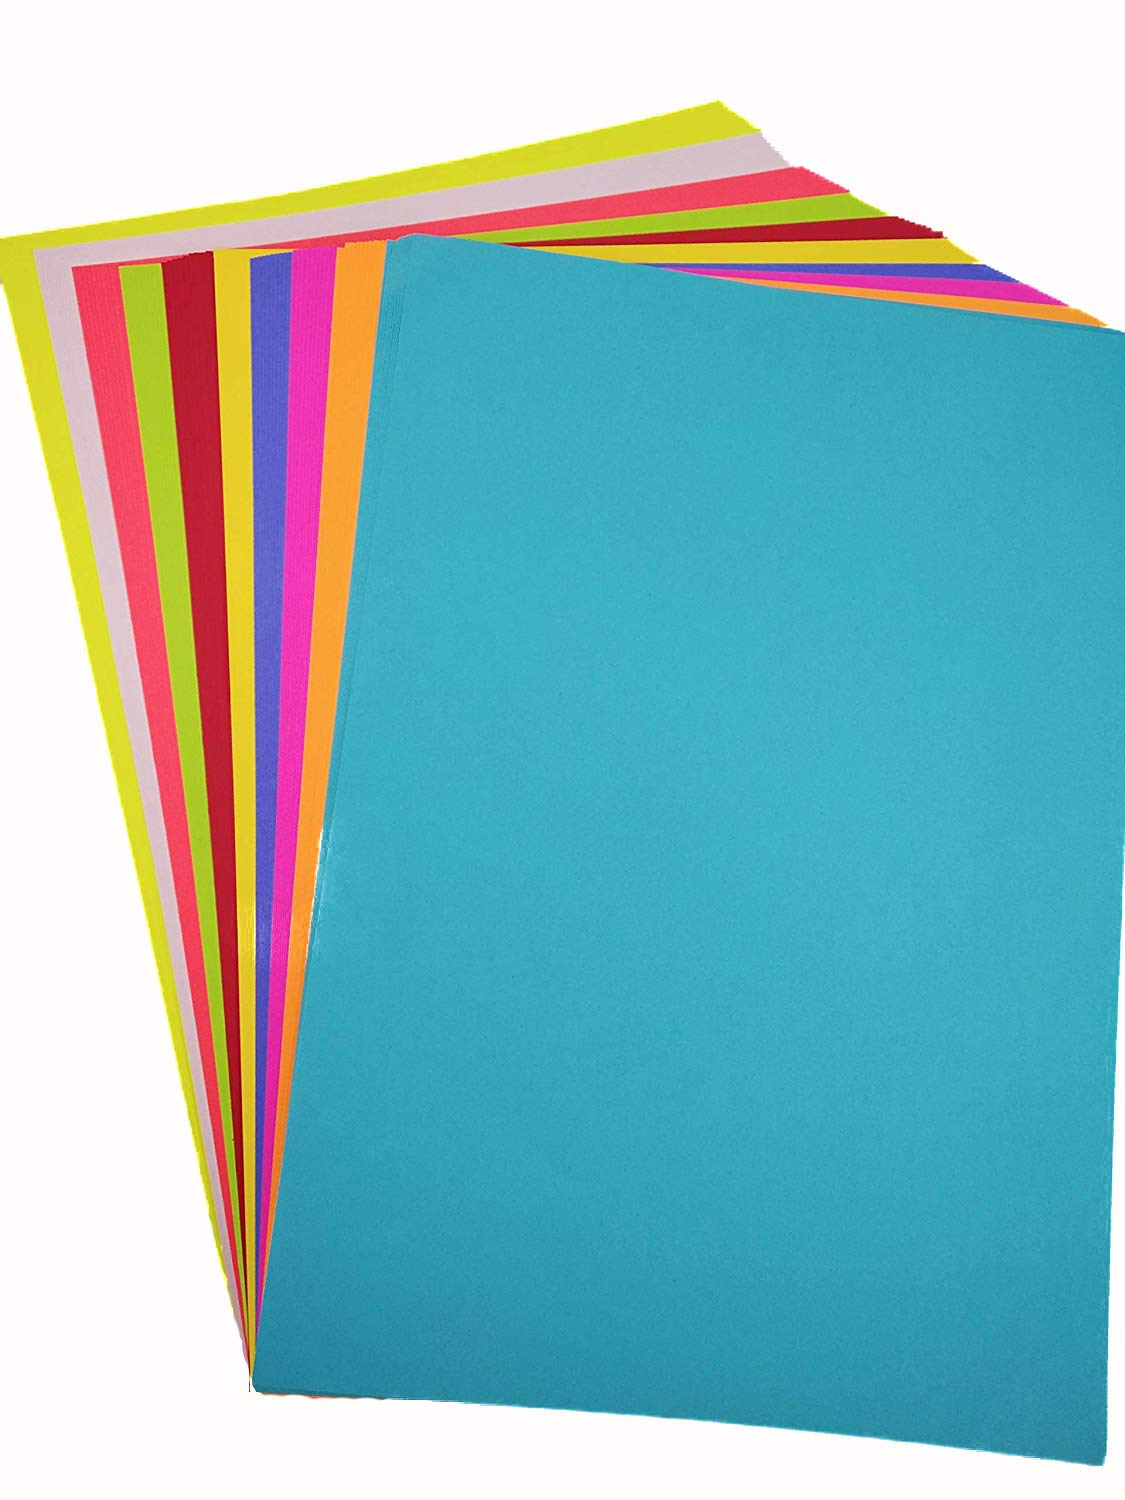 Paraspapermart Ppm A4 Neon Colour Paper For Art Craft Work Set